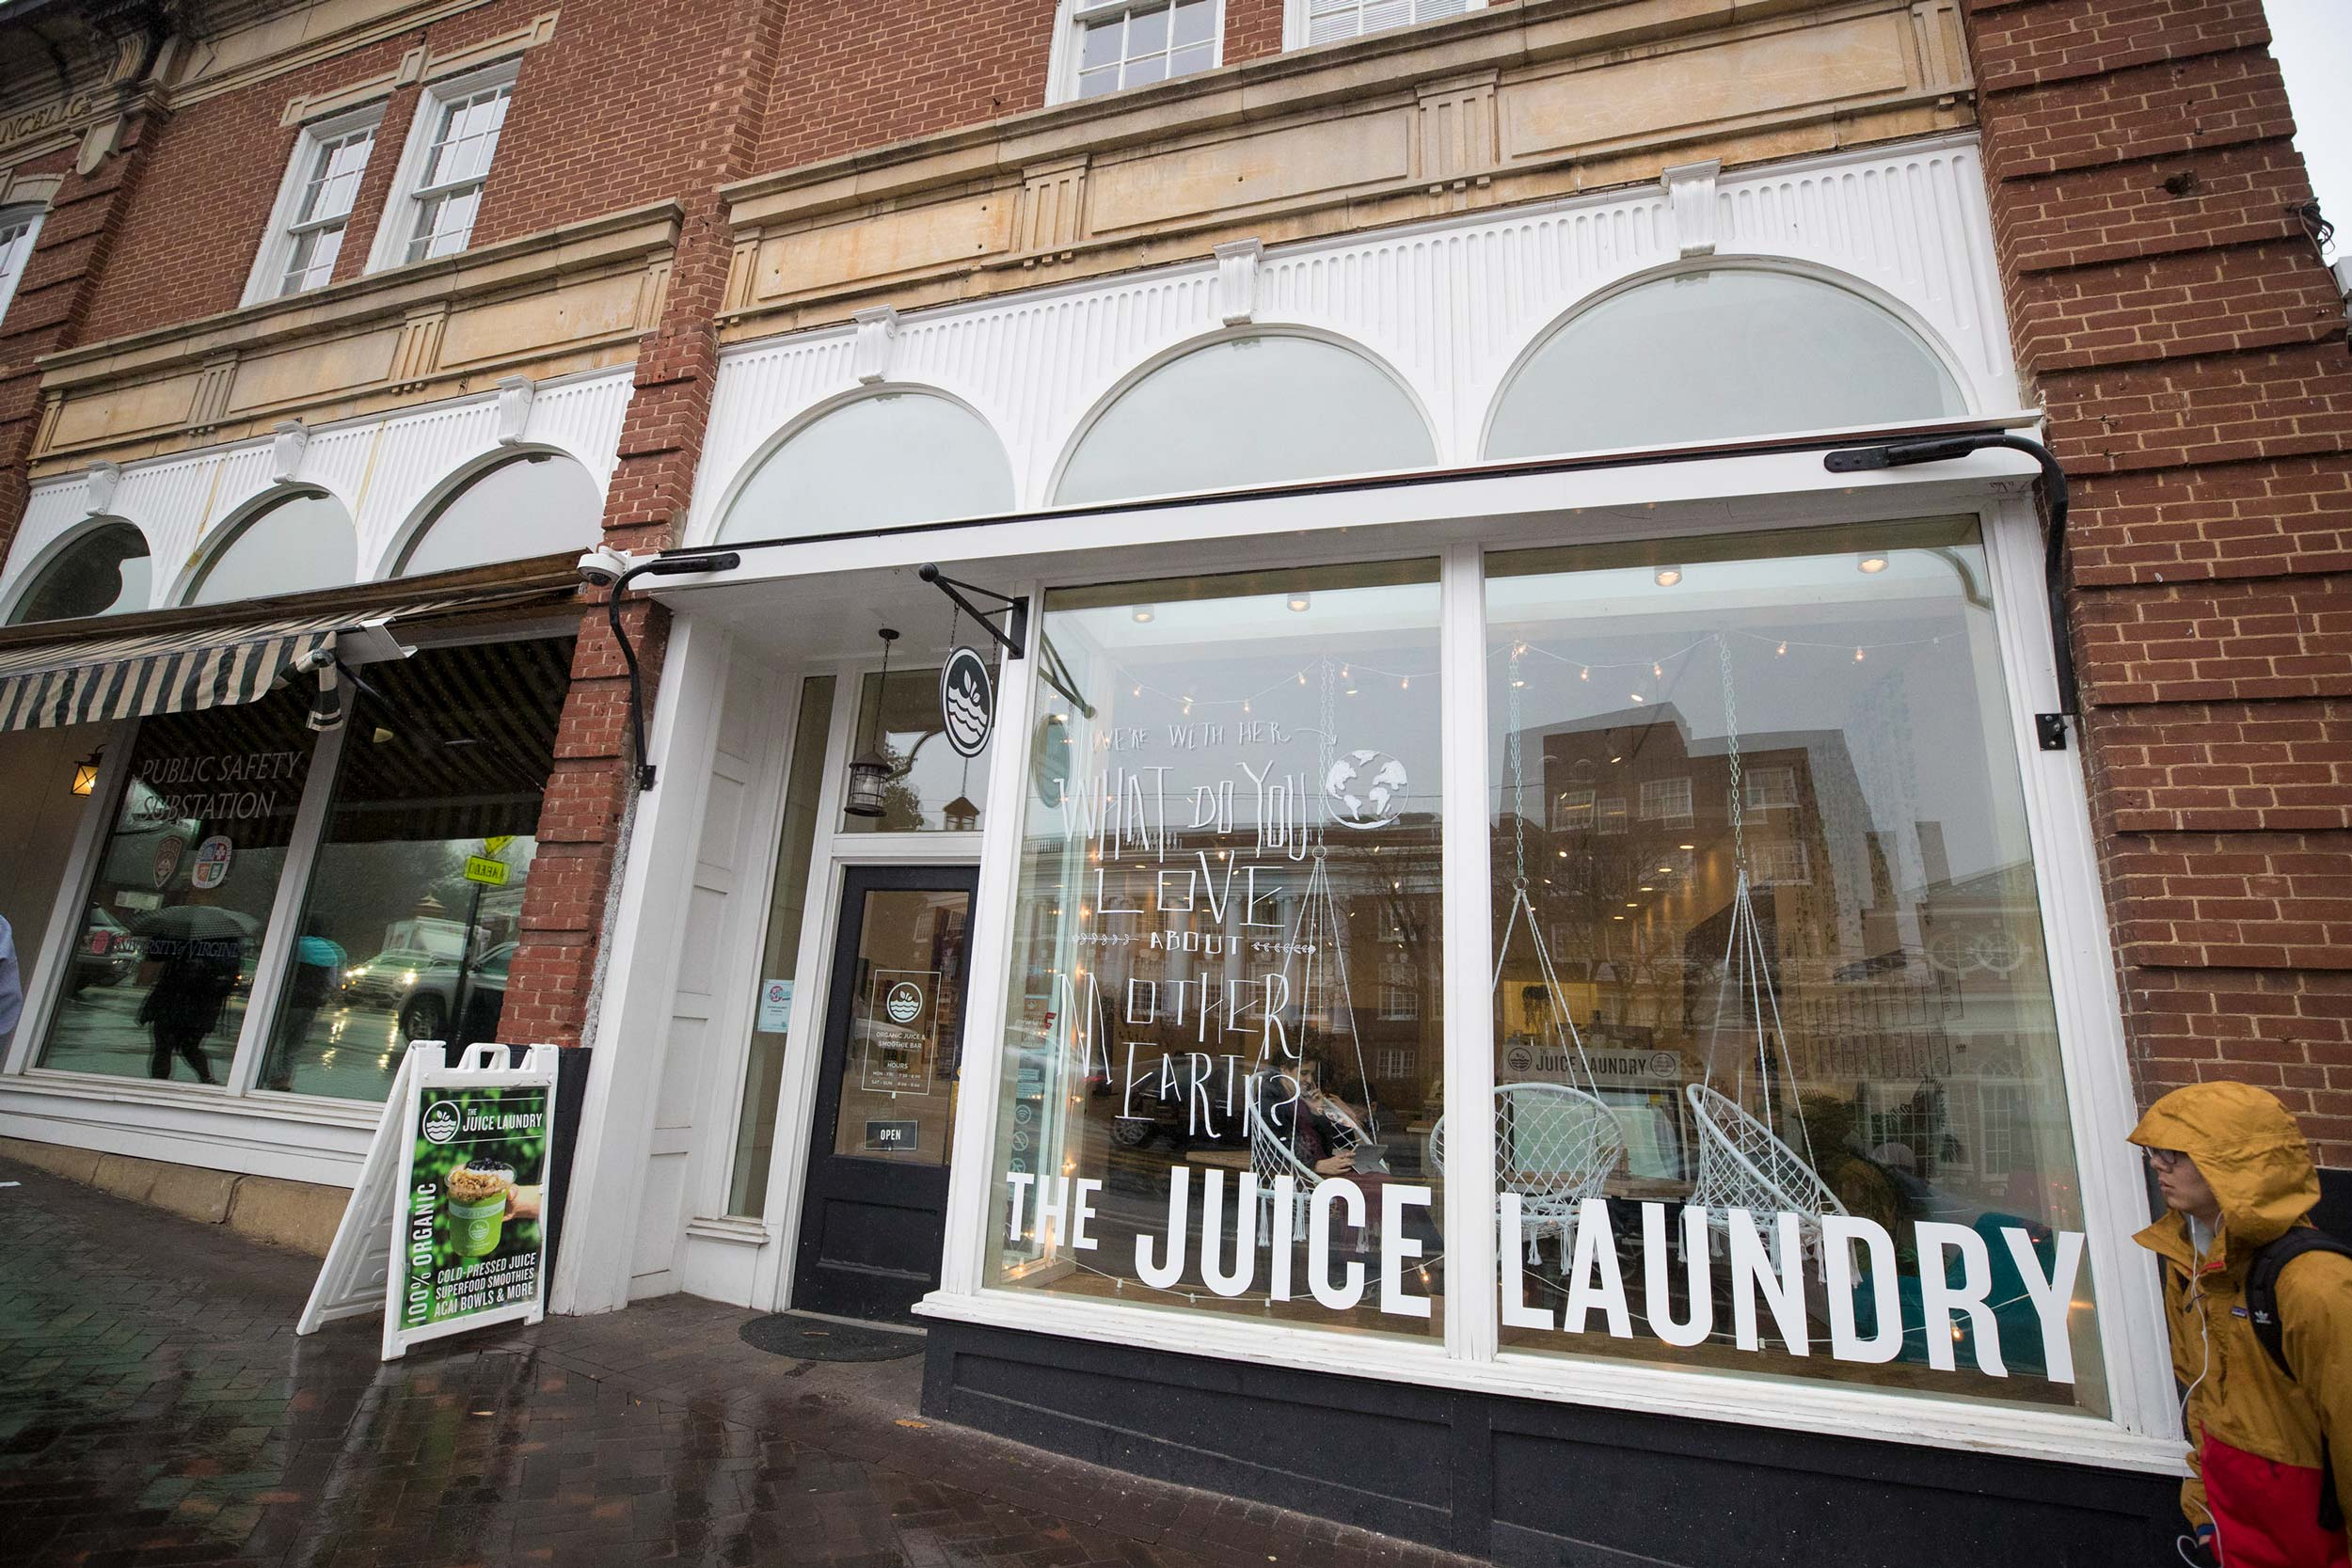 Business students are partnering with The Juice Laundry on the Corner to see how what they learn in class plays out in a small business setting.